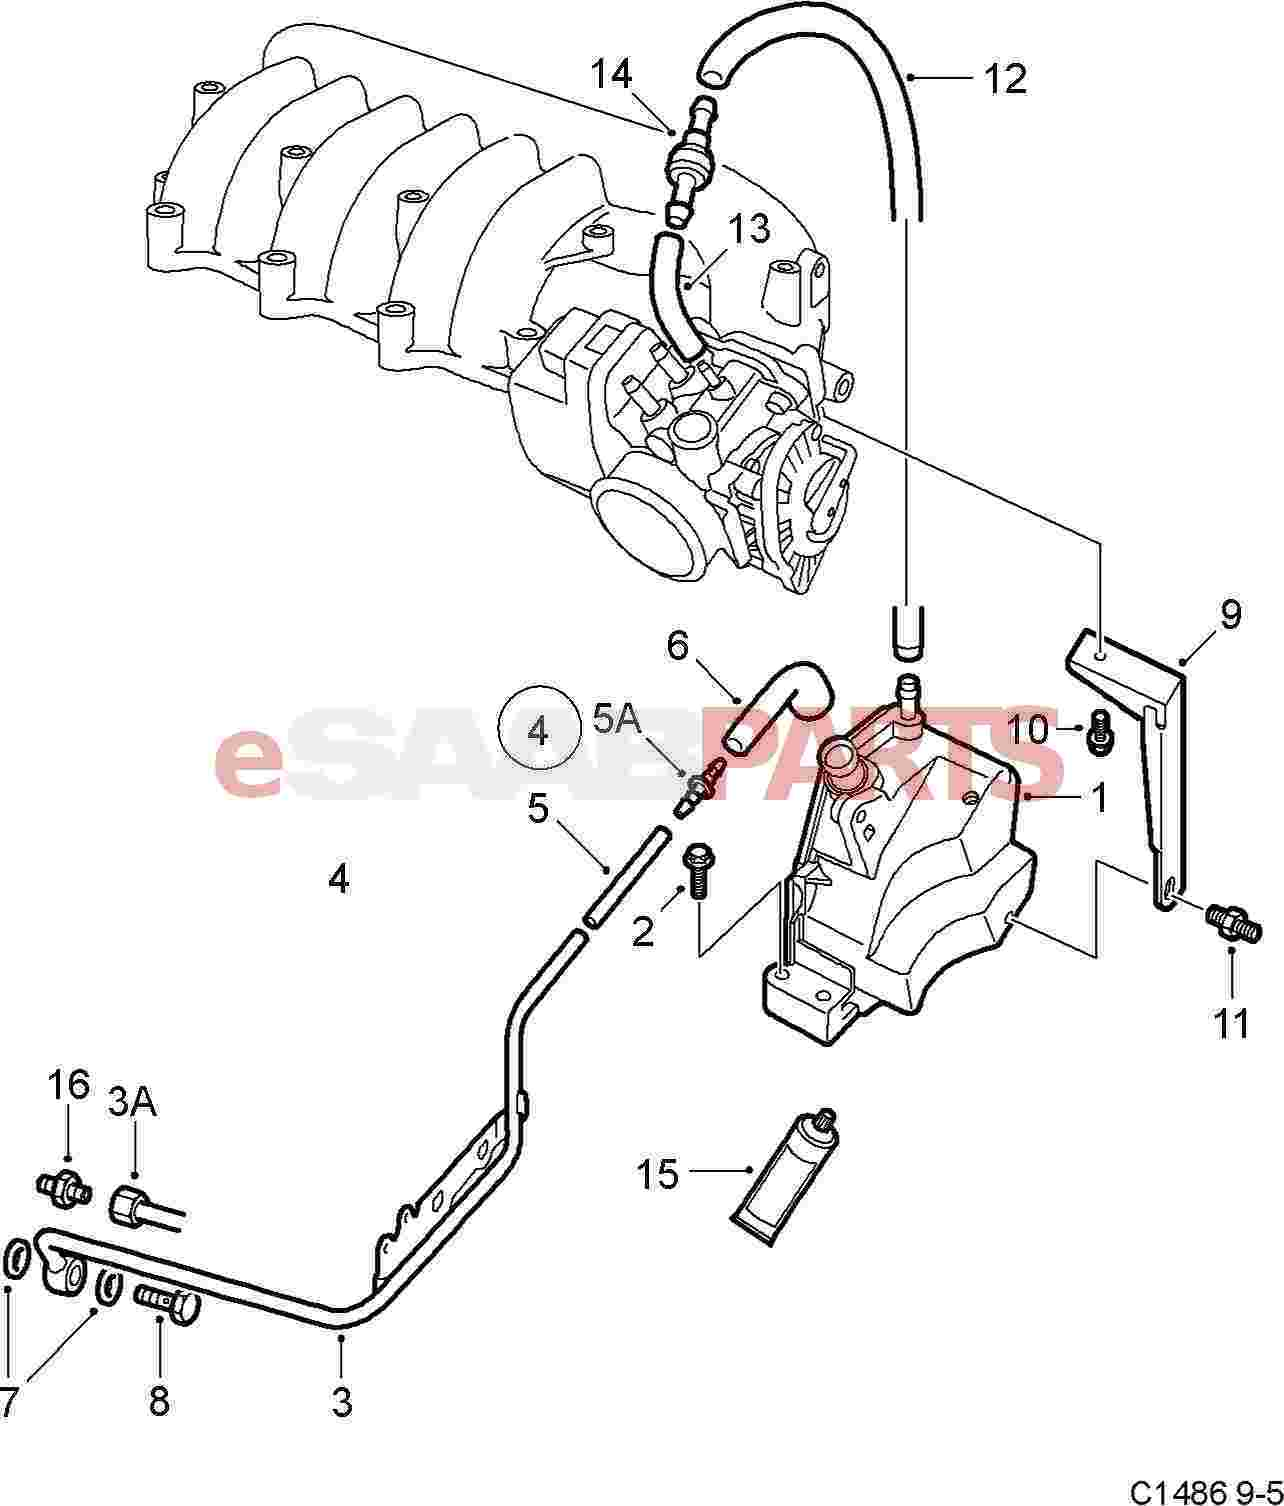 2001 saab 9 3 stereo wiring diagram toyota 1jz gte 99 parts  for free